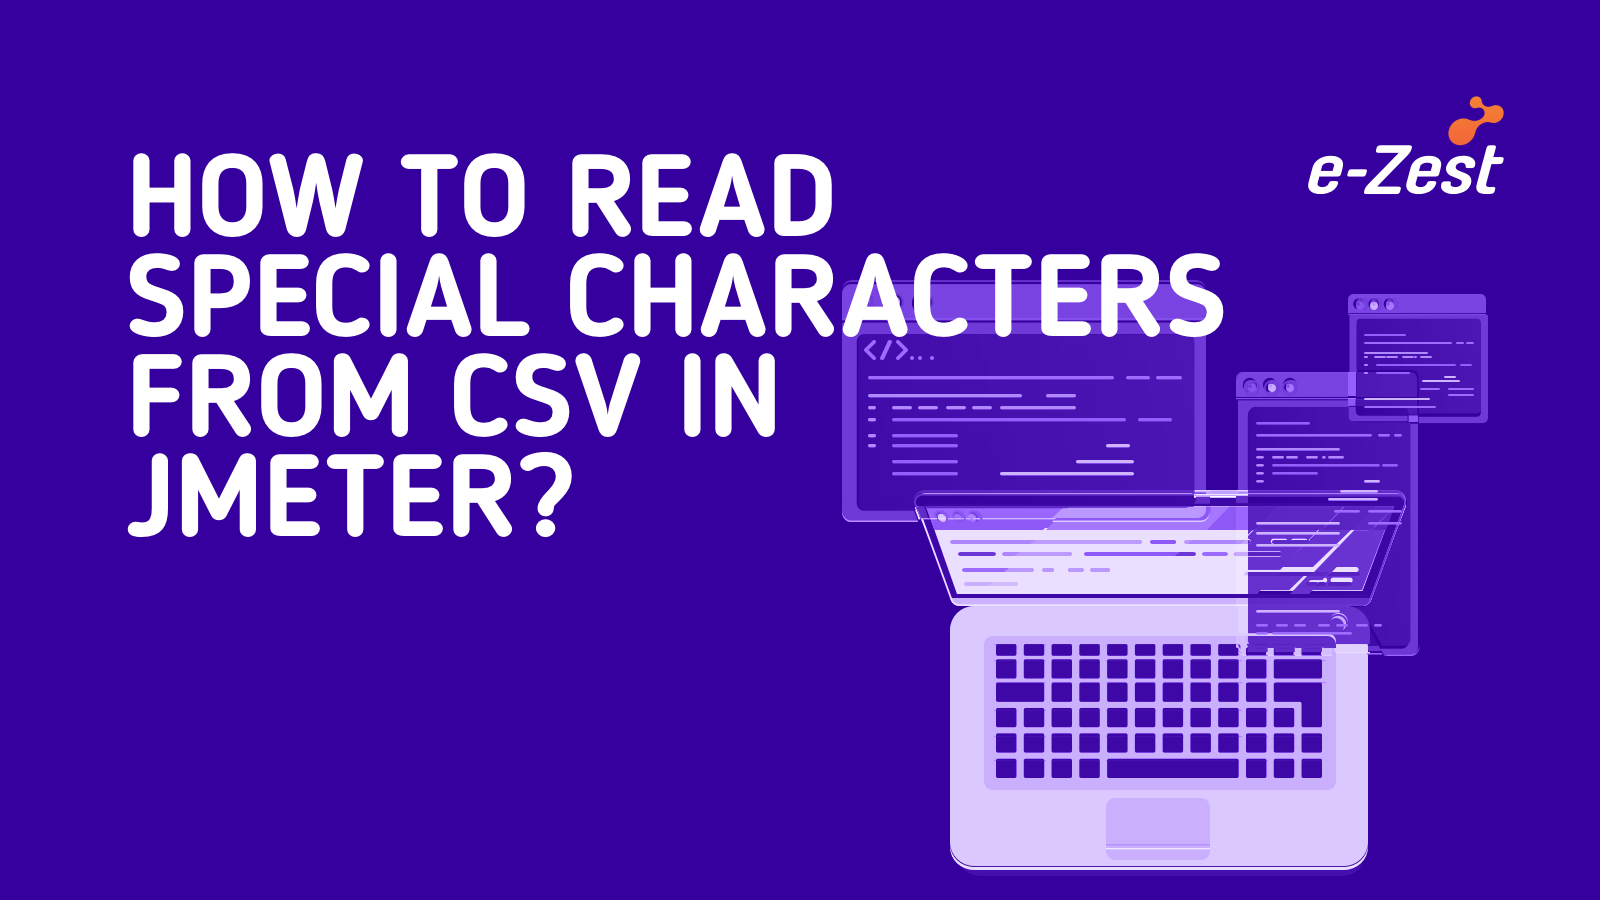 How to read special characters from CSV in JMeter?